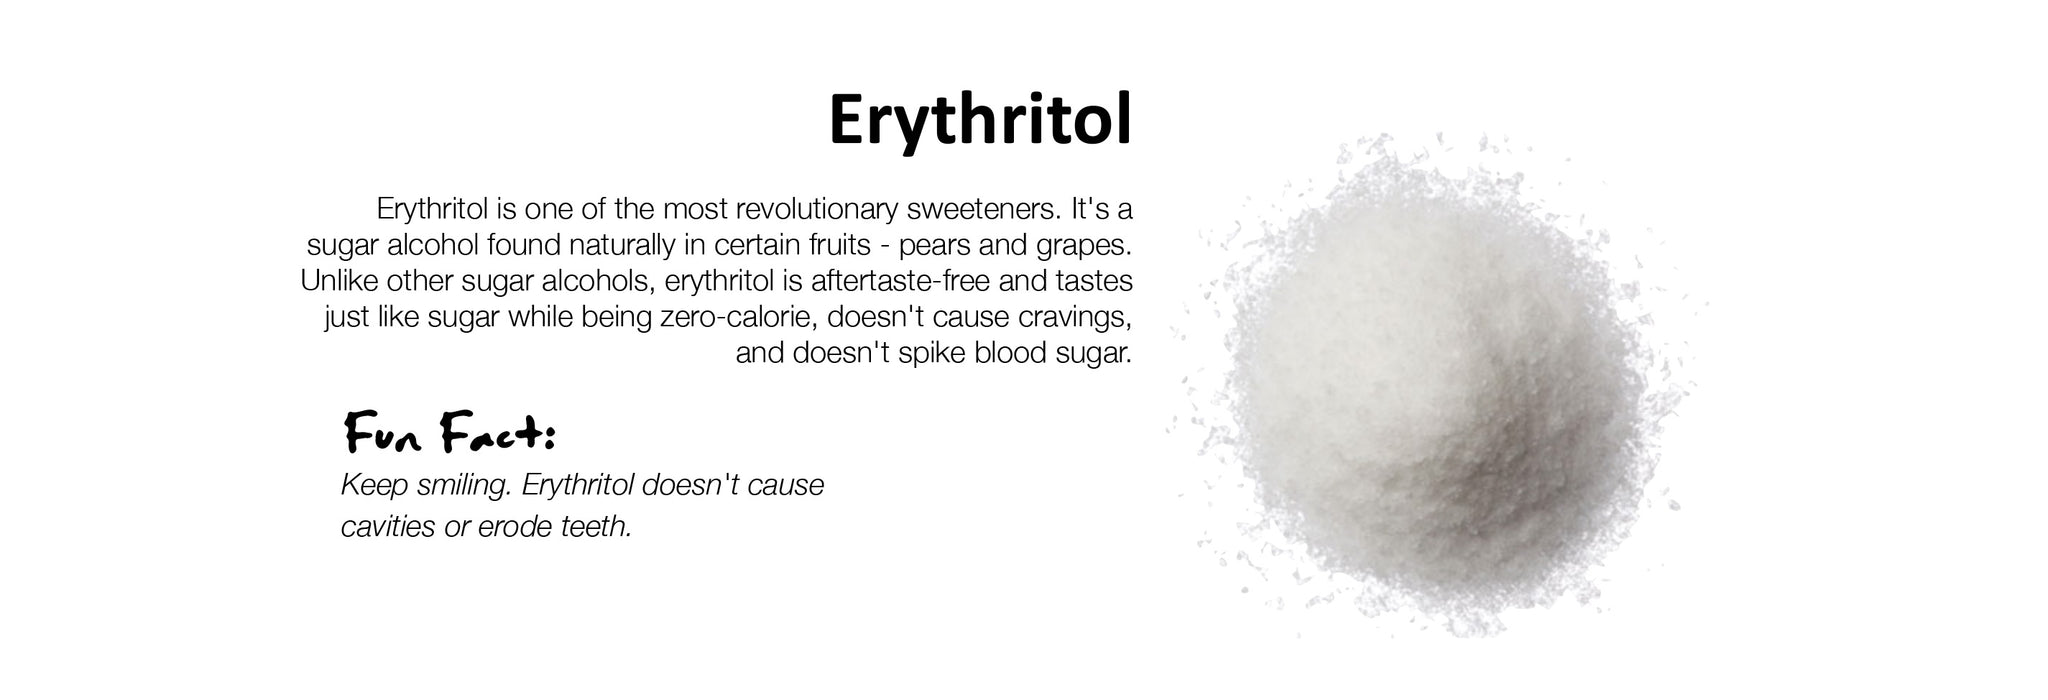 Erythritol Erythritol is one of the most revolutionary sweeteners. It's a sugar alcohol found naturally in certain fruits - pears and grapes. Unlike other sugar alcohols, erythritol is aftertaste-free and tastes just like sugar while being zero-calorie, doesn't cause cravings, and doesn't spike blood sugar.